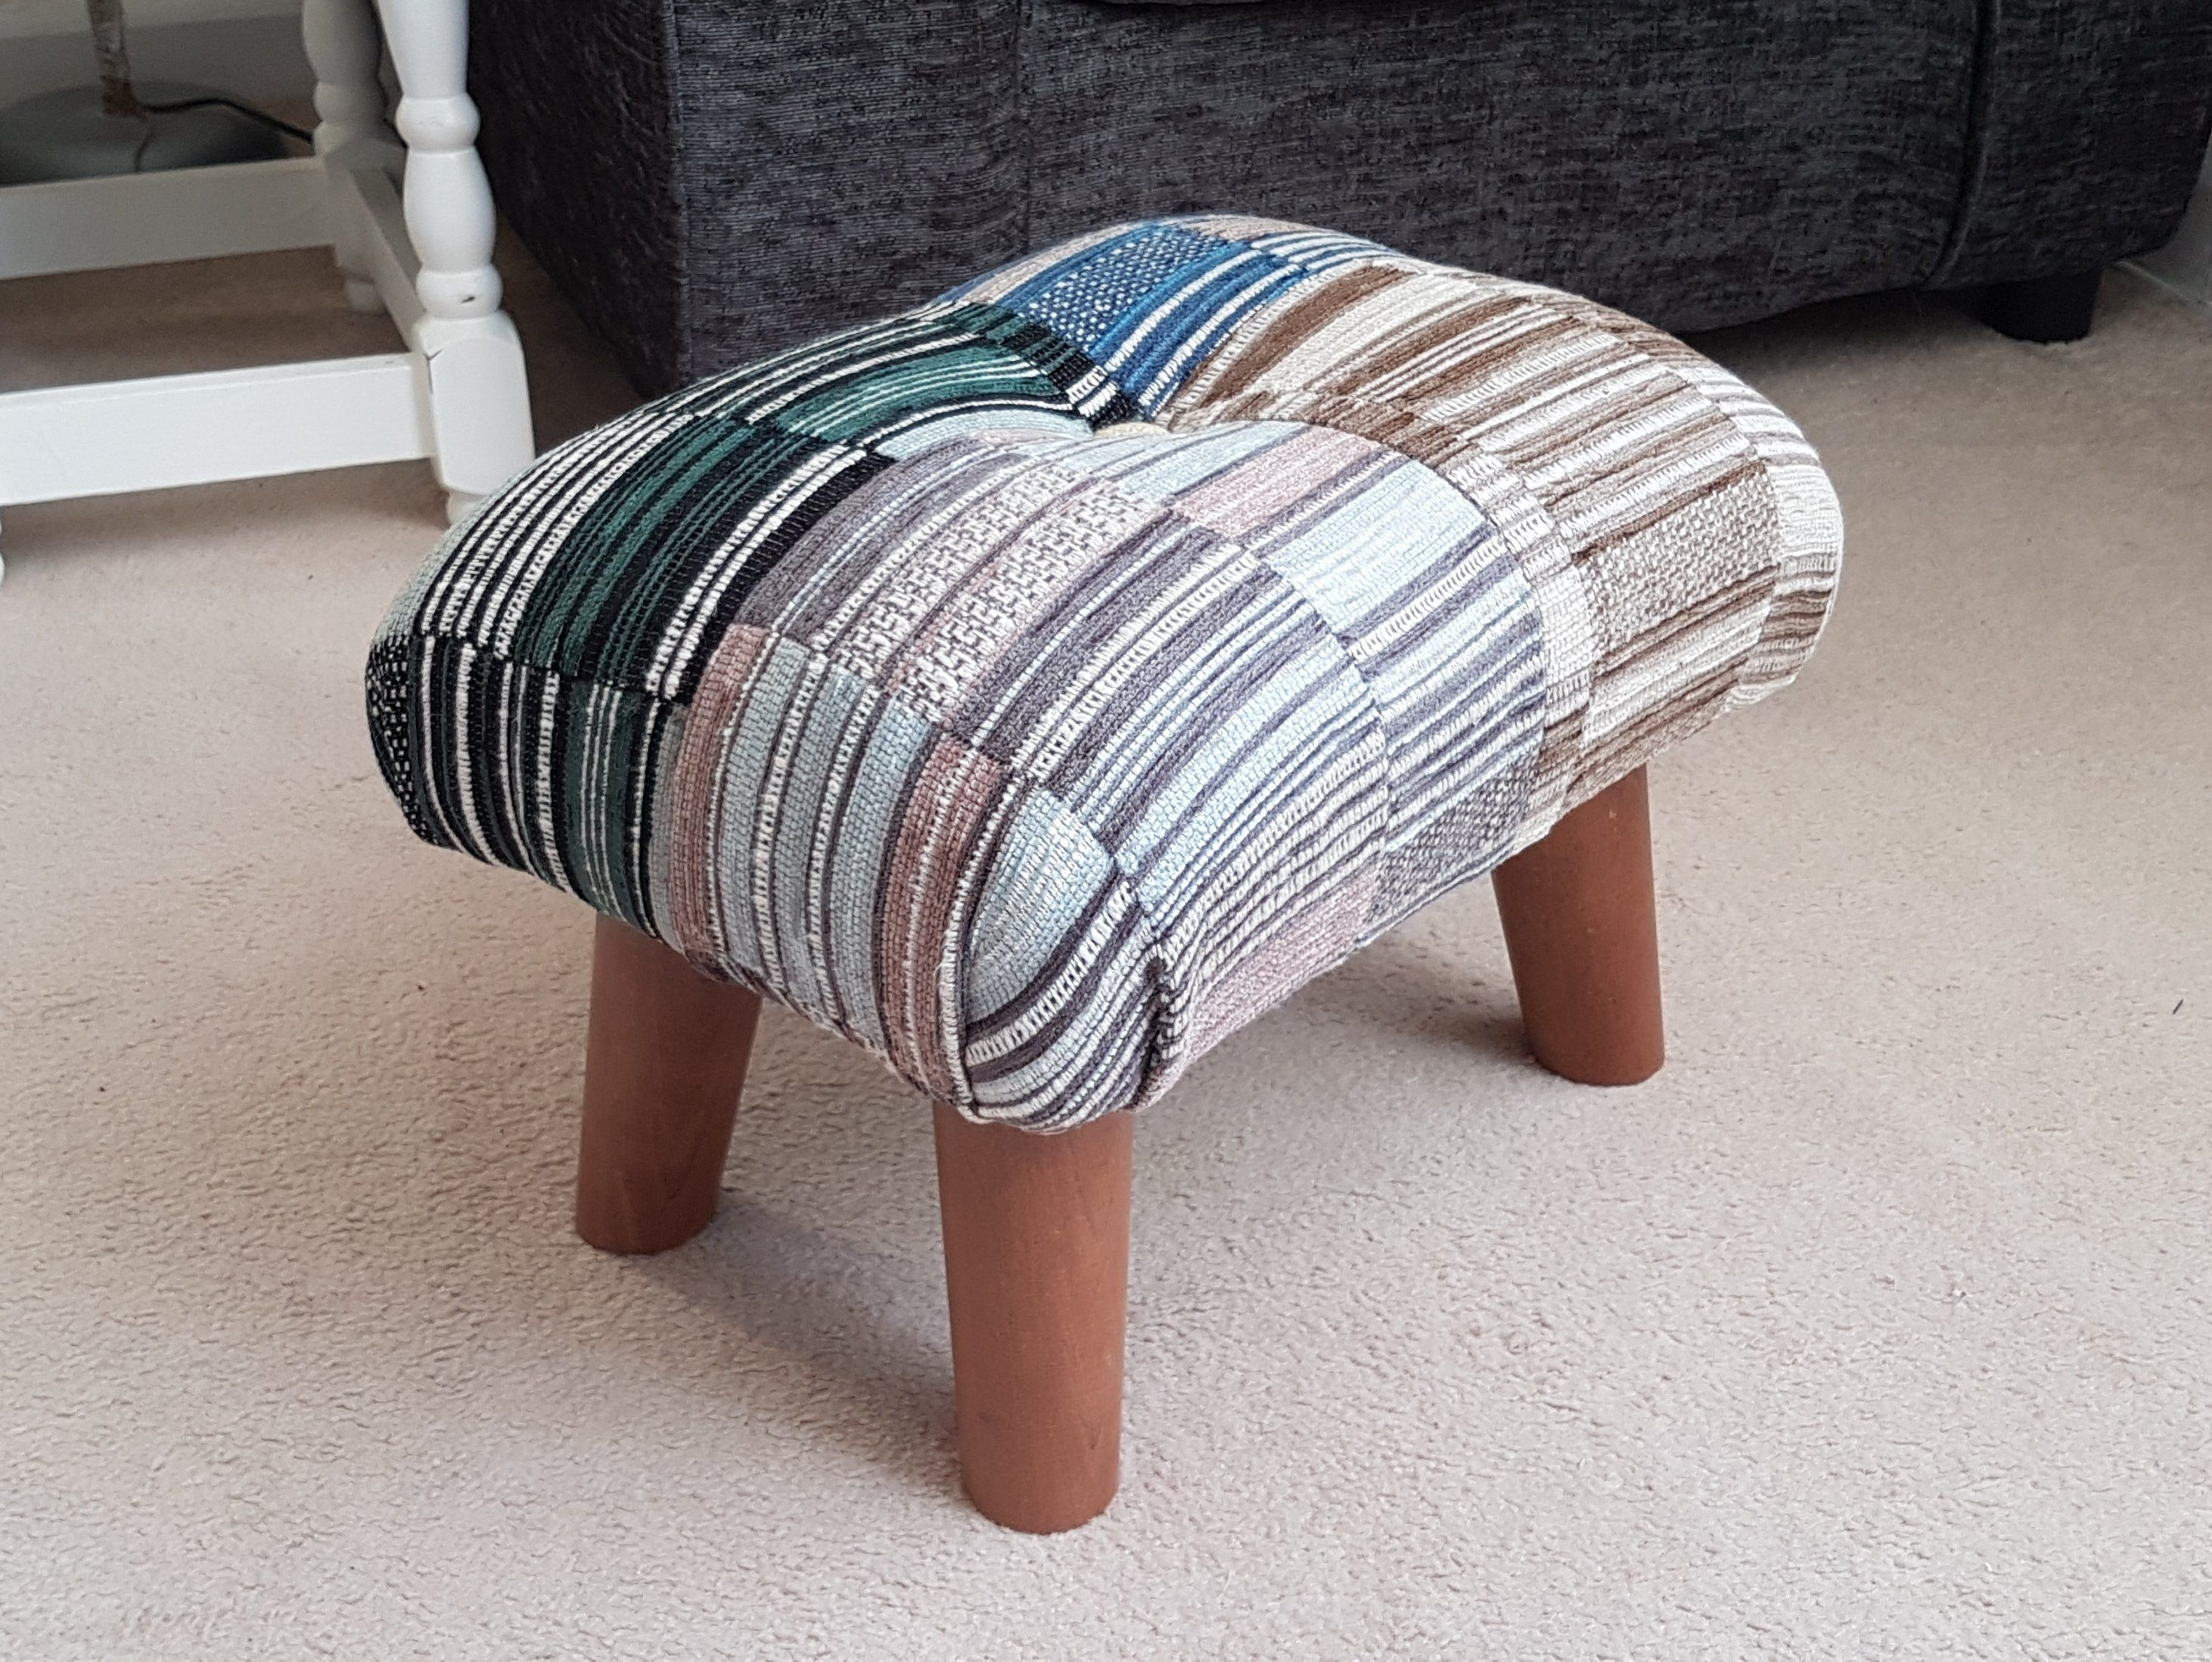 Patchwork Footstool Small Footstool Gift Idea Small Foot Stool Upholstered Foot Stool Handmade Footstool Buttoned Footstool